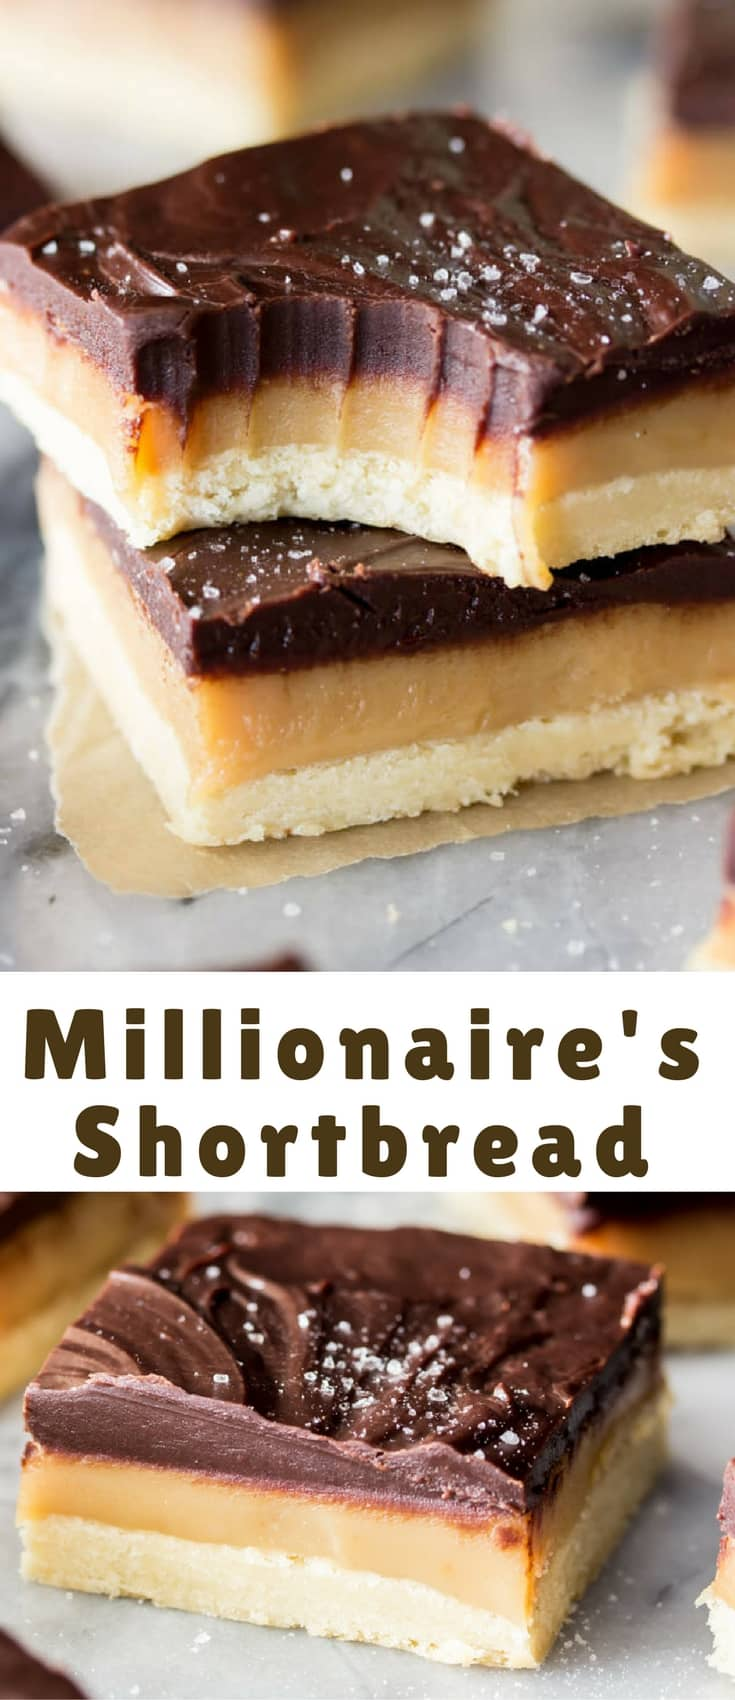 This Millionaire's Shortbread is the perfect trifecta: Sweet simple, crisp shortbread, rich chewy, homemade caramel, and thick dark chocolate ganache. Sprinkle everything off with a scattering of sea salt and you have a decadently rich treat that lives up to every penny of its lucrative name.